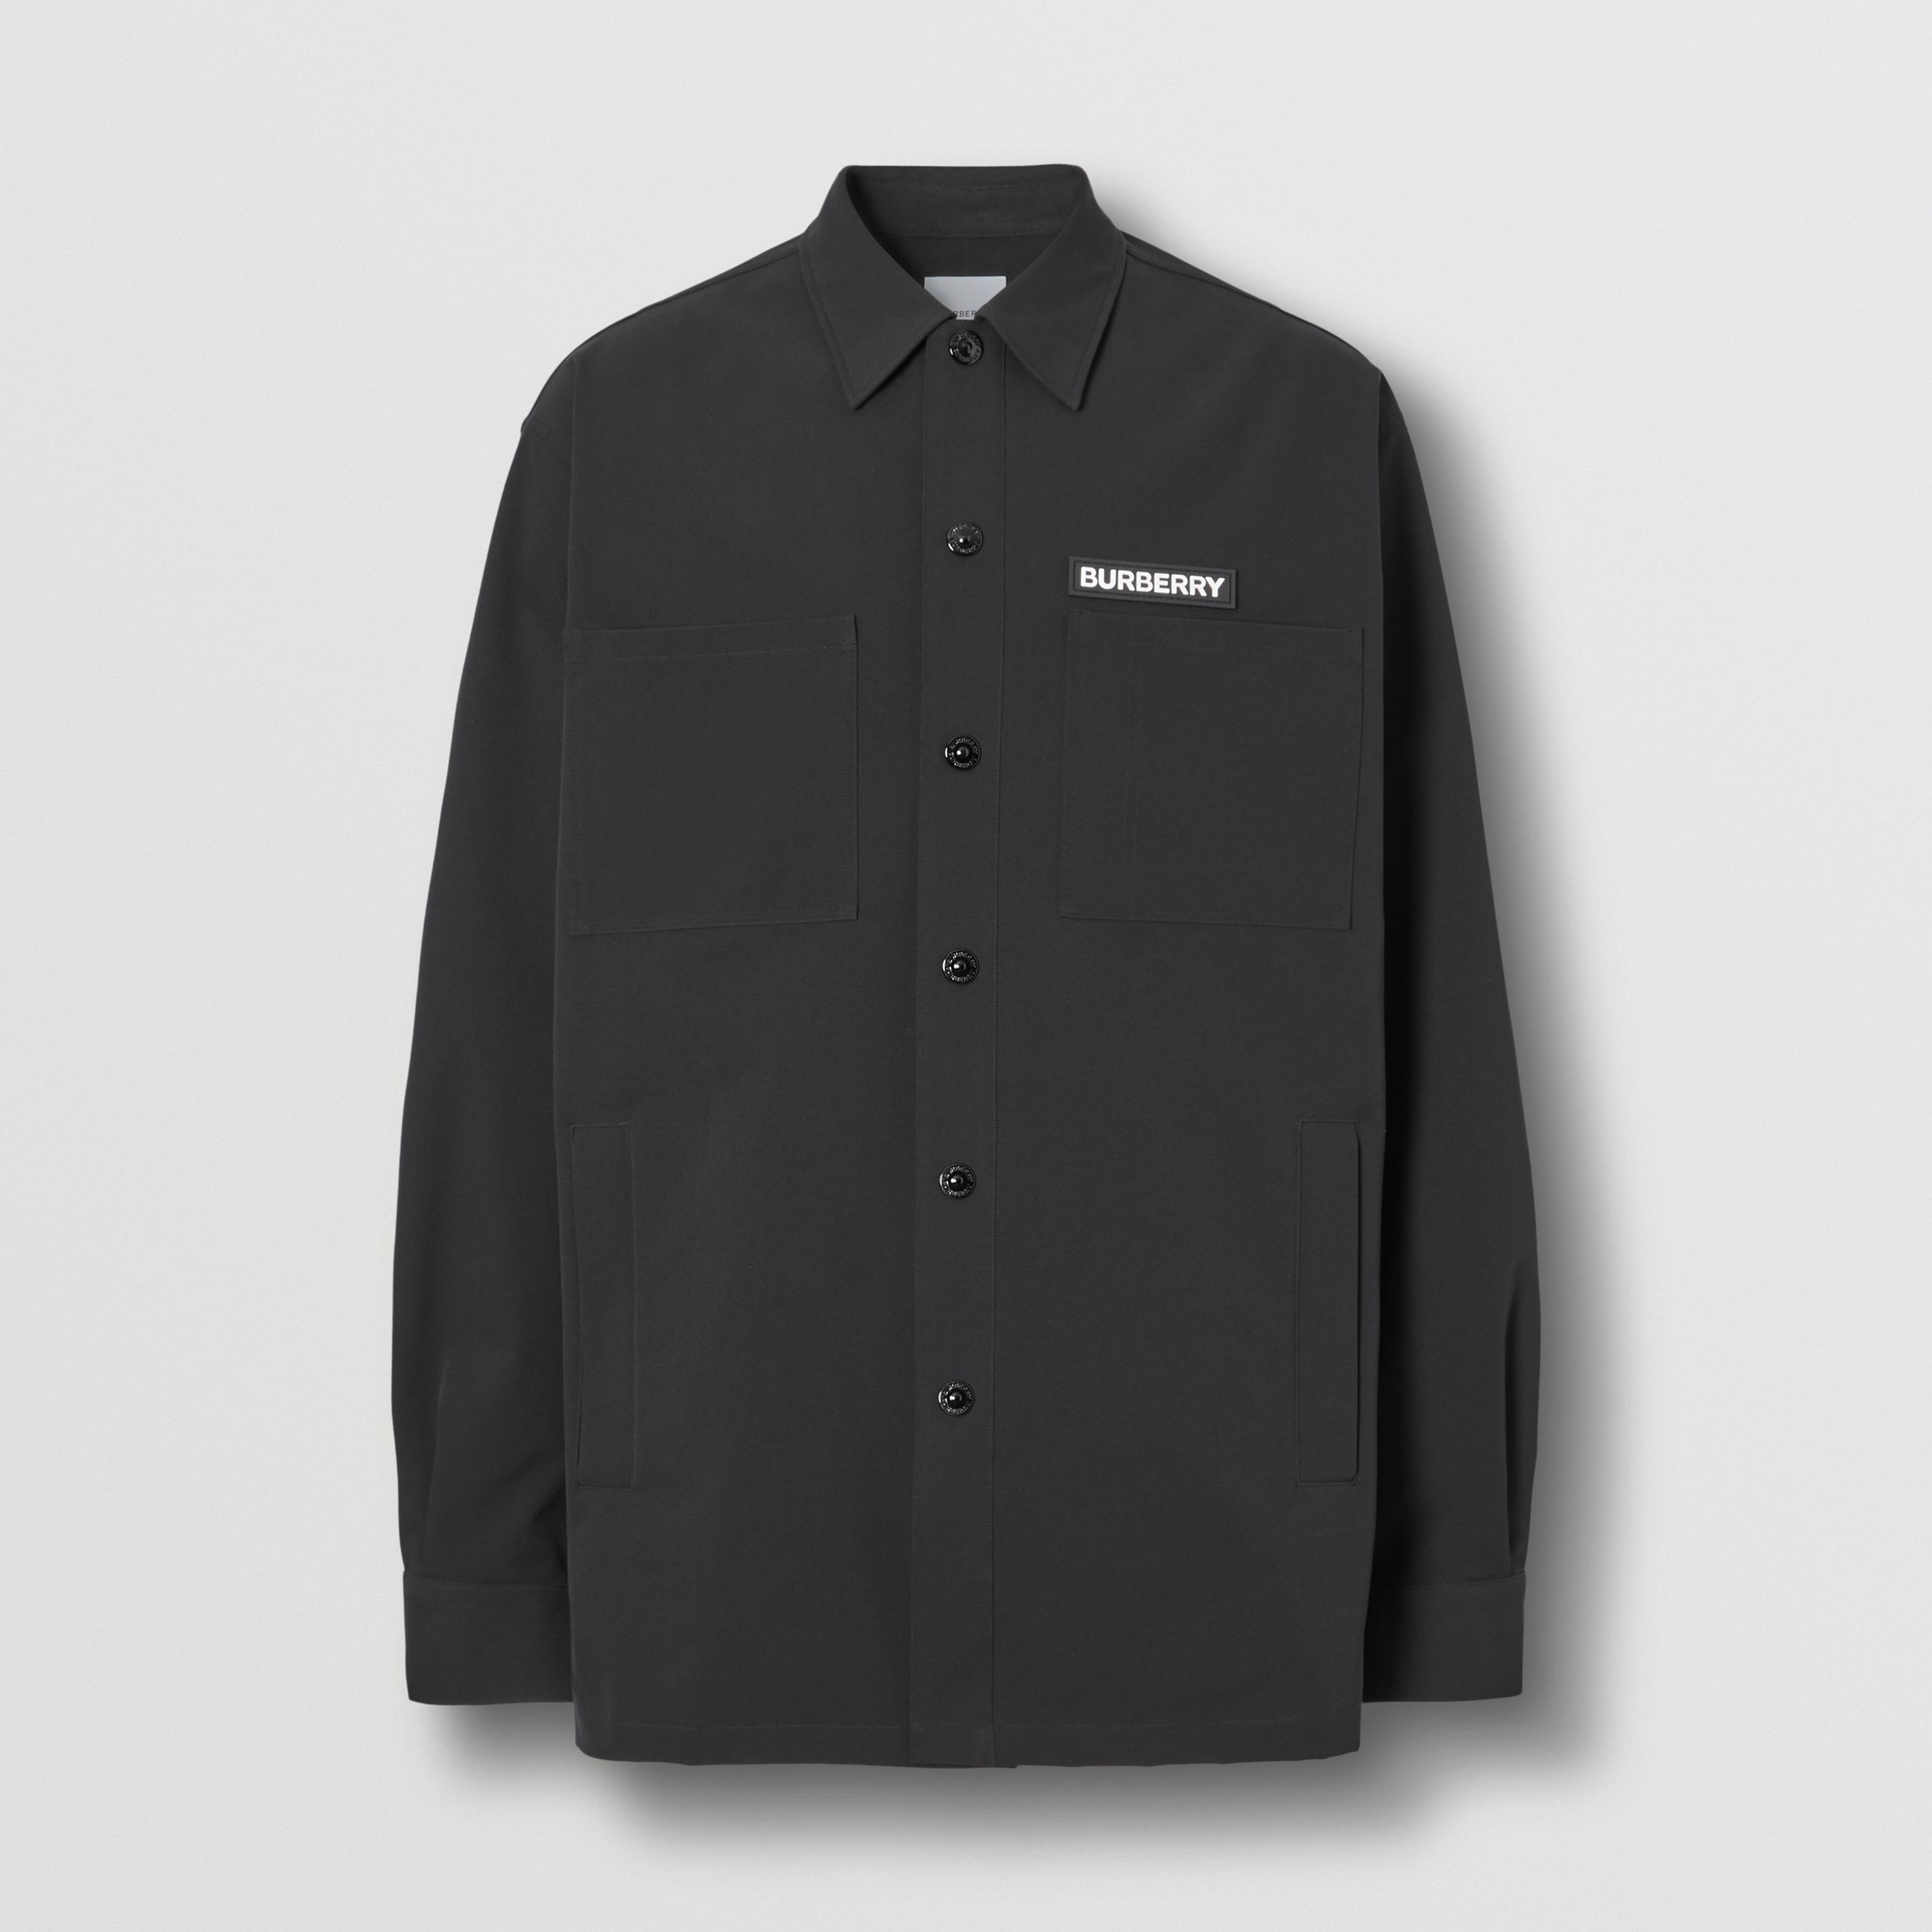 Embroidered Globe Graphic Shirt in Black - Men | Burberry Hong Kong S.A.R. - 4